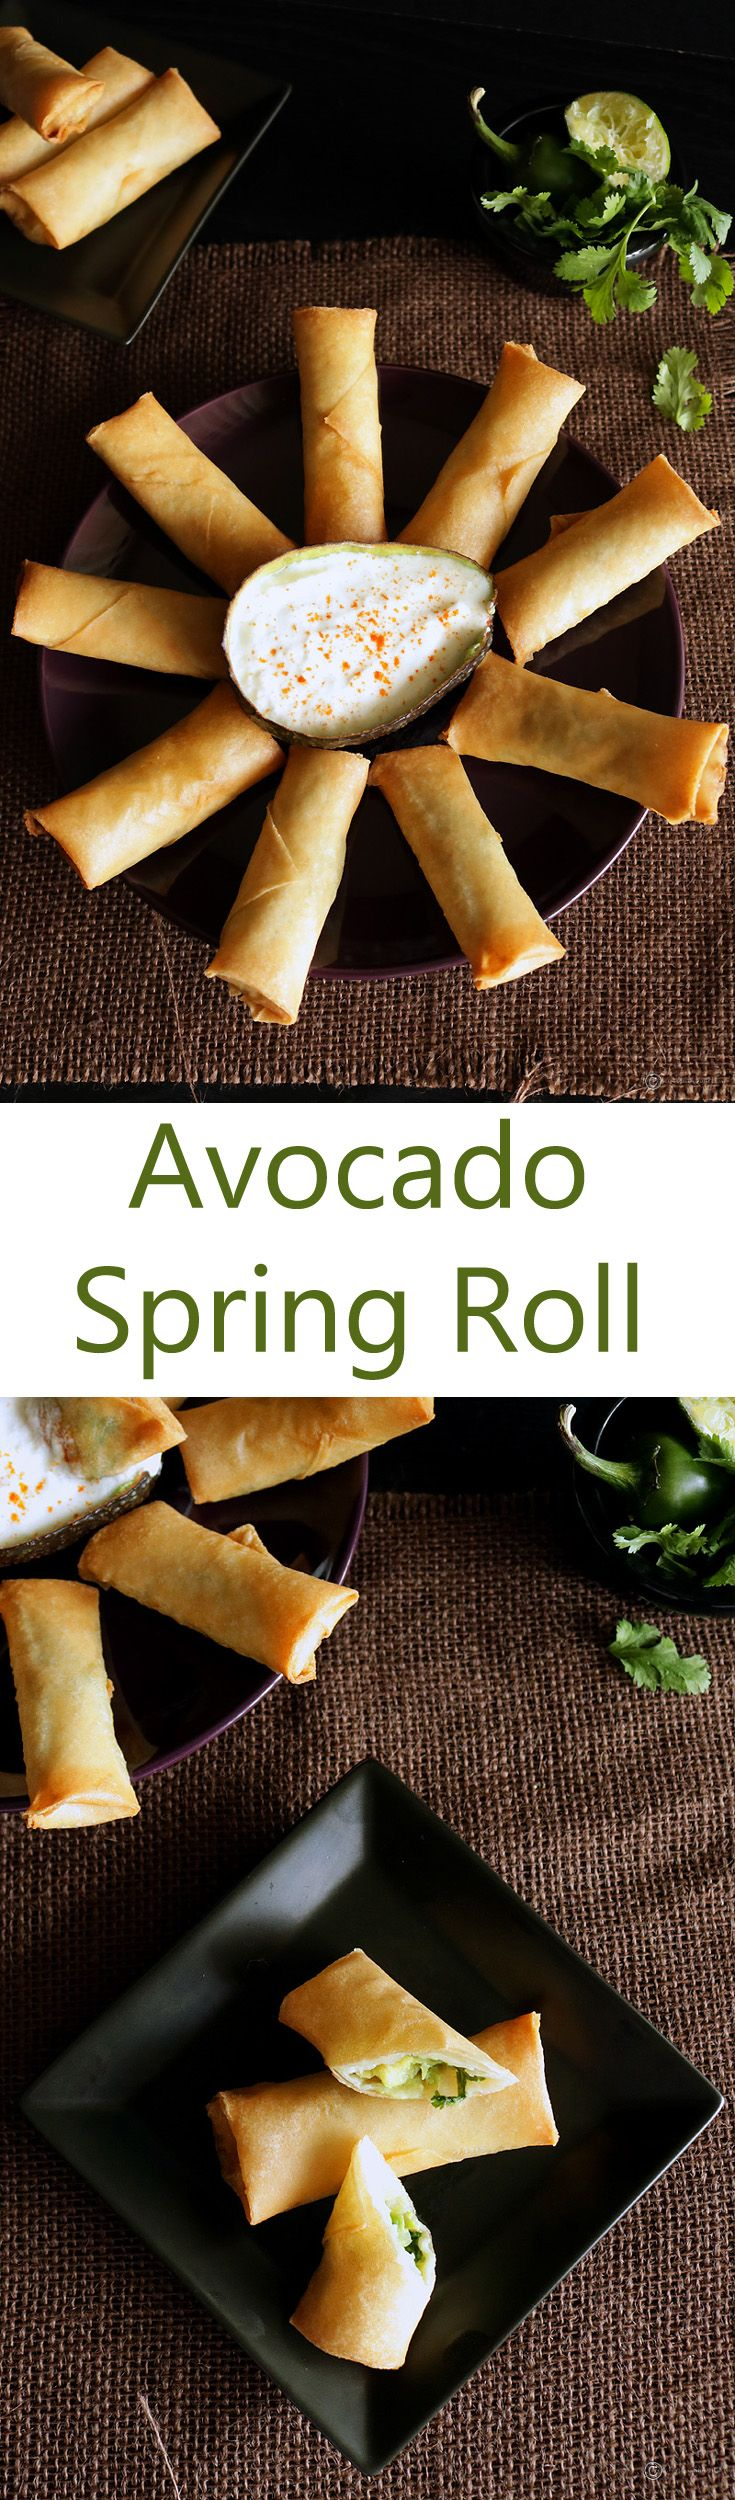 A super delicious fusion appetizer. Combines the crispy outer of an Asian spring roll to a naturally creamy avocado filling which resembles a guacamole.